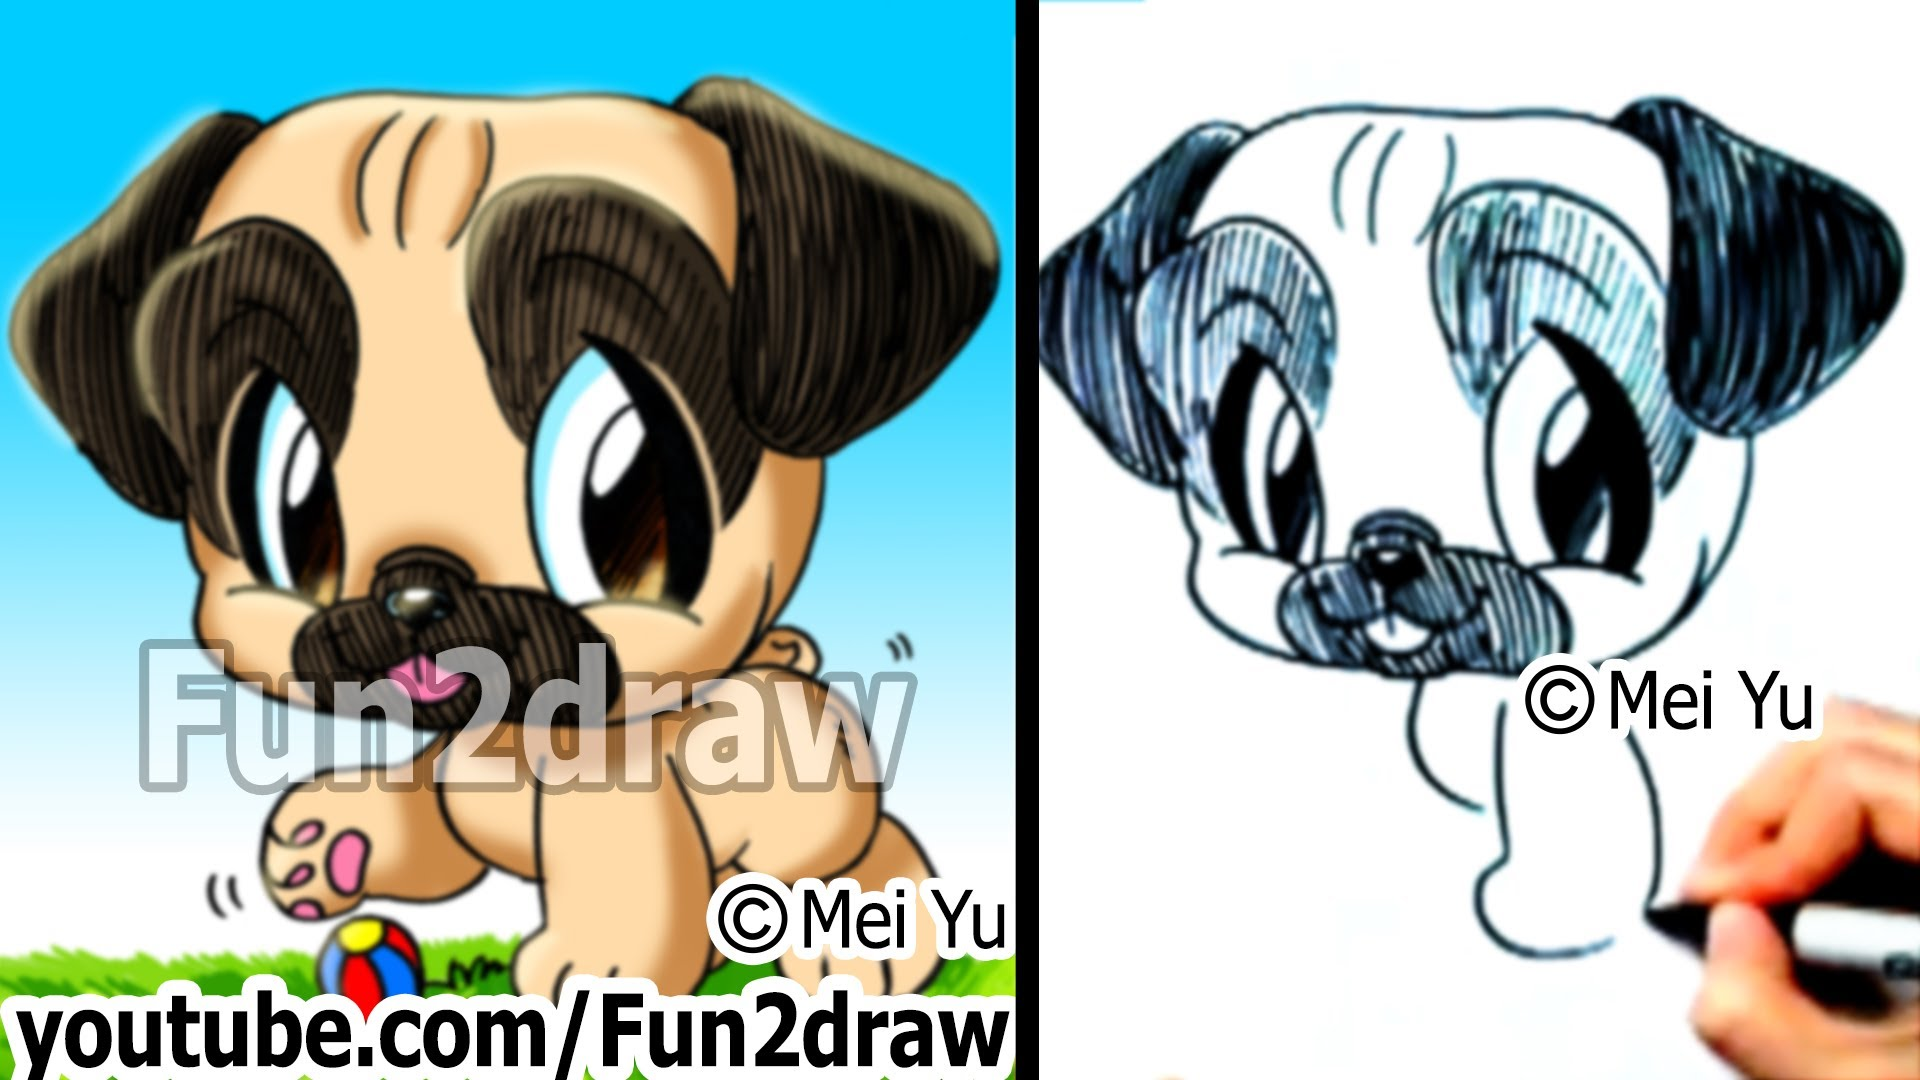 Drawn pug line drawing Fun2draw Dog to How Pug